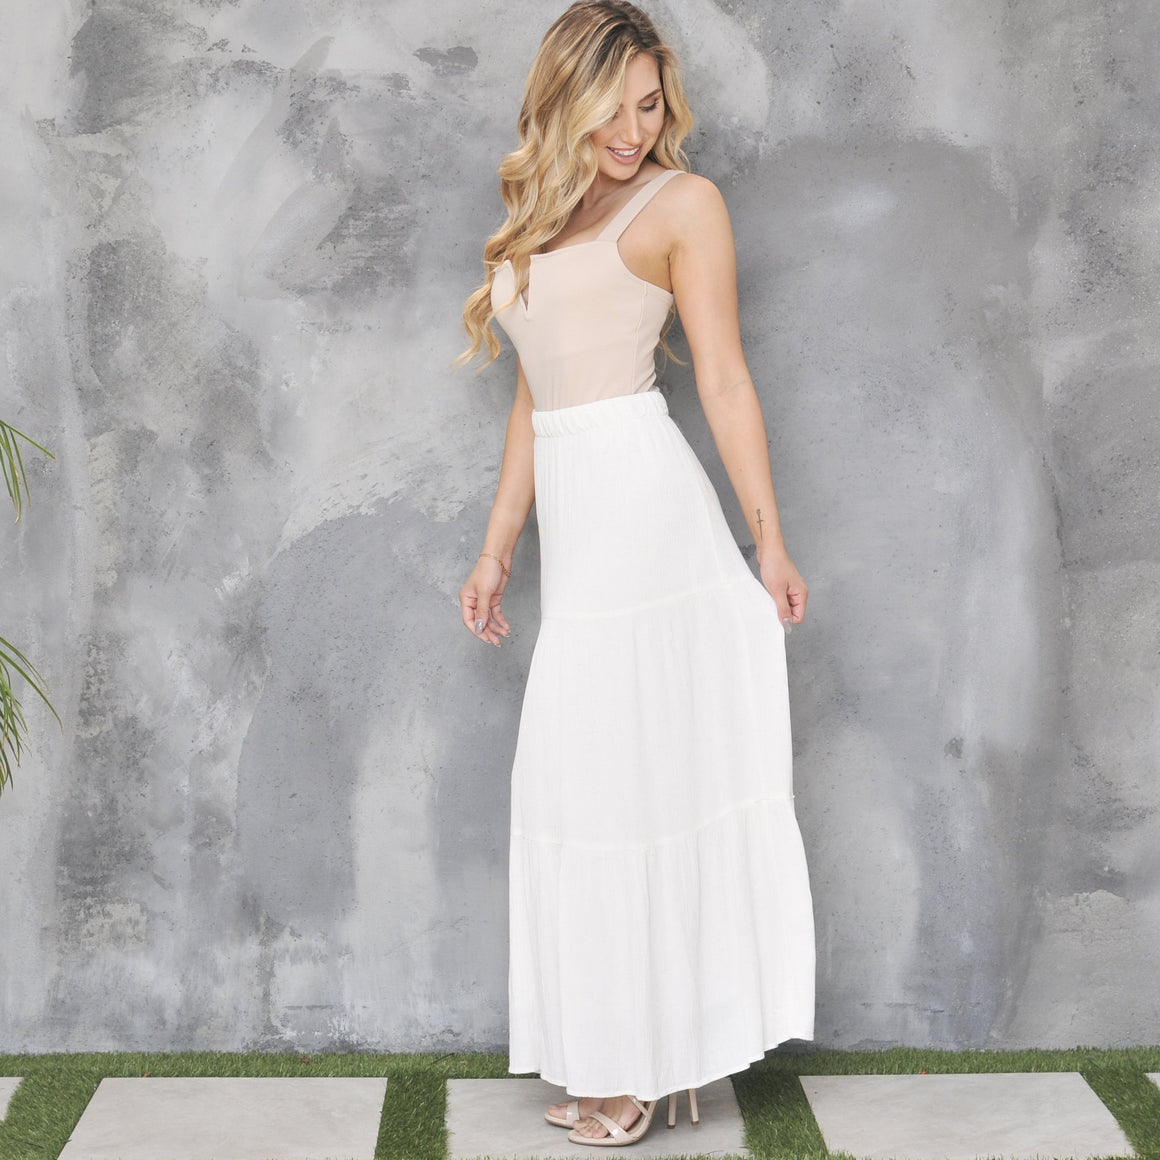 Flow With Me Maxi Skirt in Ivory - Dainty Hooligan